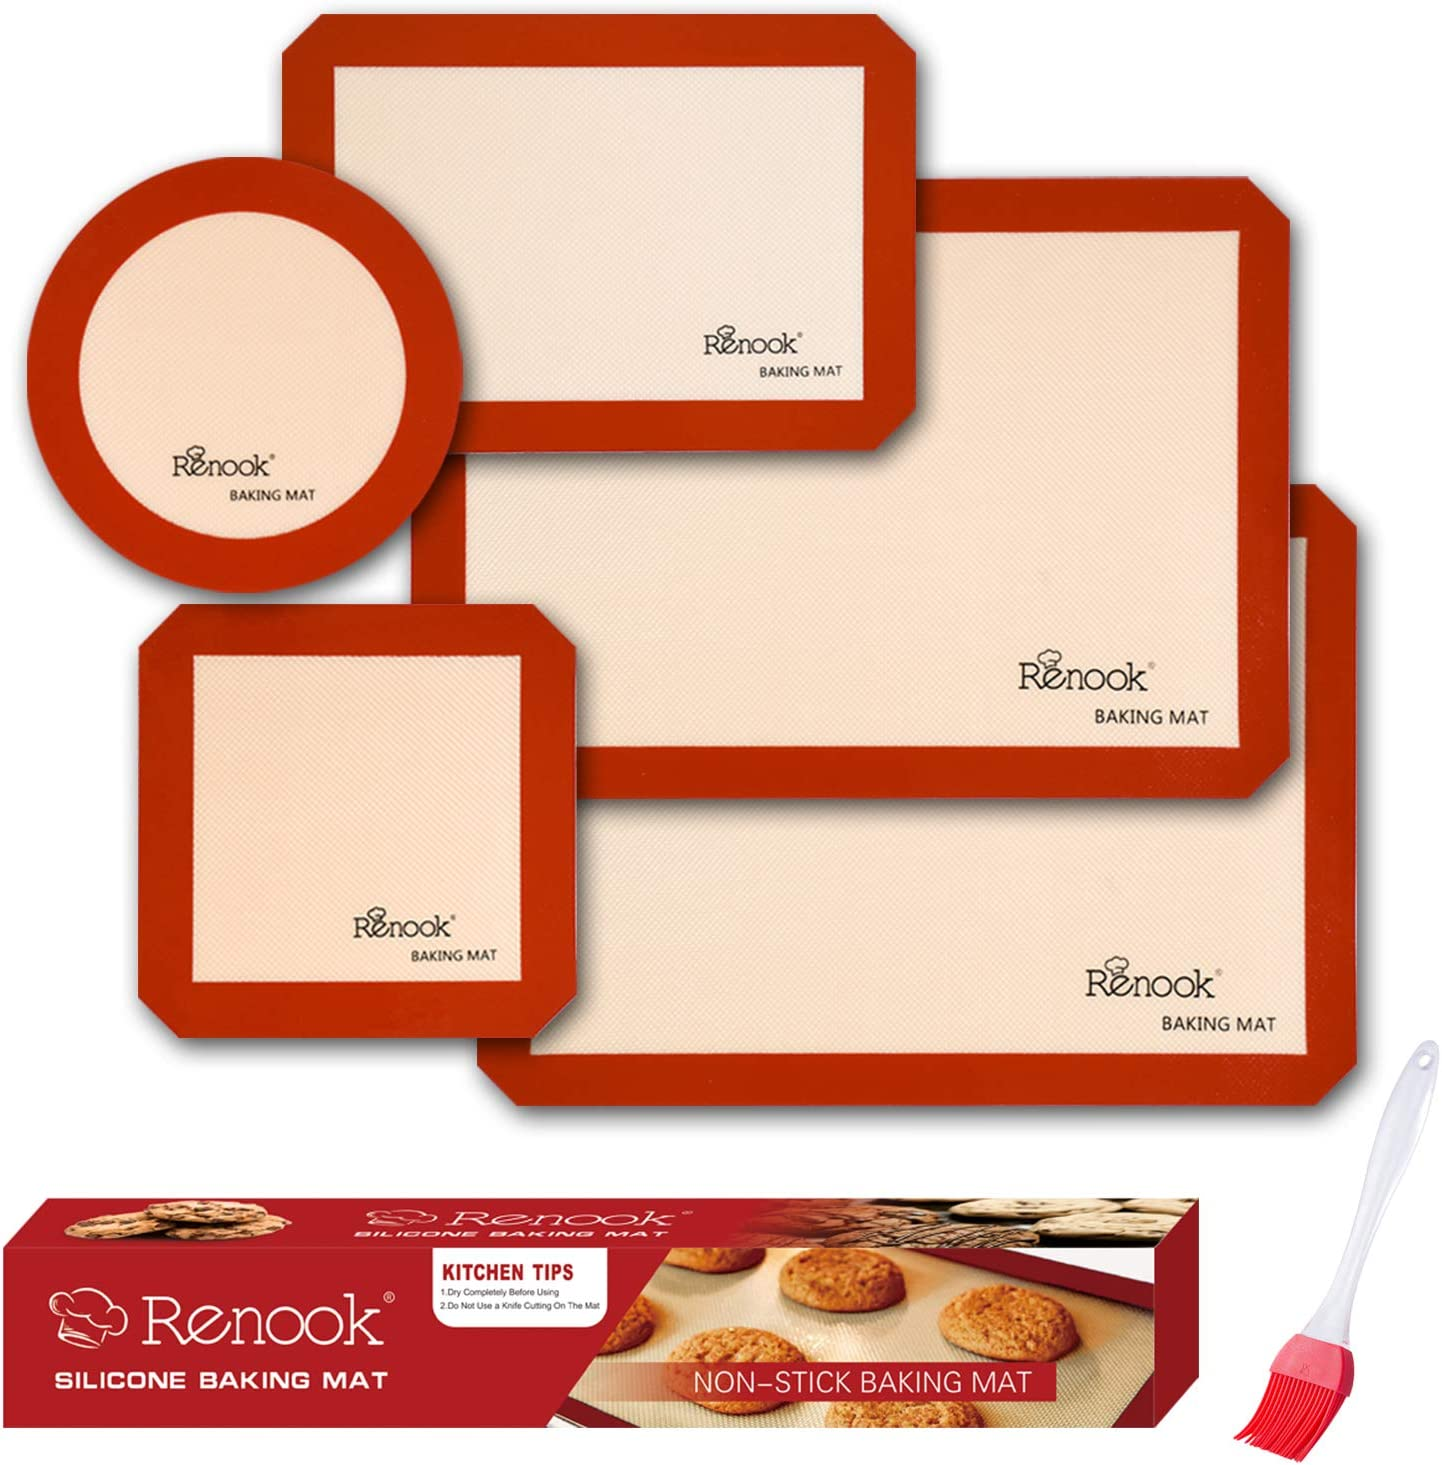 RENOOK Silicone Baking Mats Set of 5-2 Half Sheets Mats + 1 Quarter Sheet Liner + 1 Round & 1 Square Cake Pan Mat - 100% Non-stick Reusable Food Safe Liners & silicone brush- Macaron, Pastry, Cookie